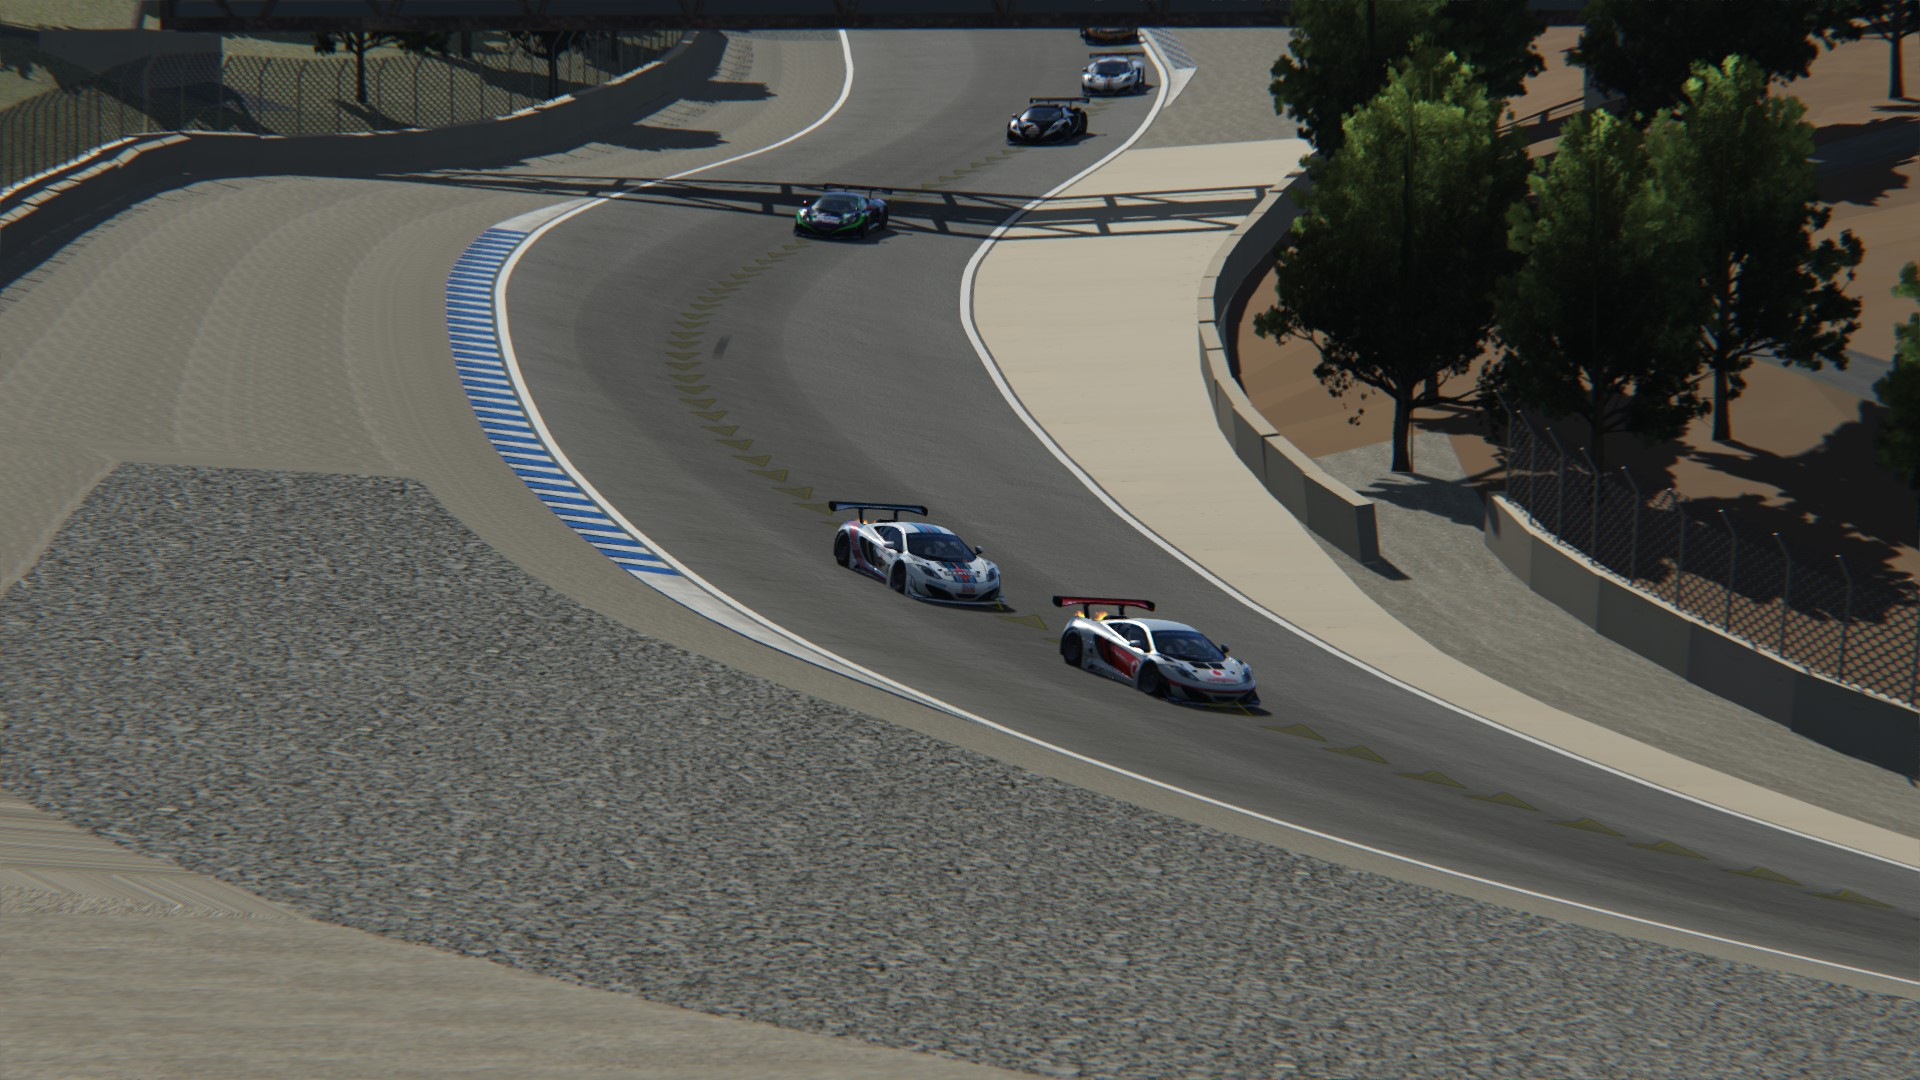 Screenshot_mclaren_mp412c_gt3_bs_lagunaseca_27-5-116-12-39-24.jpg